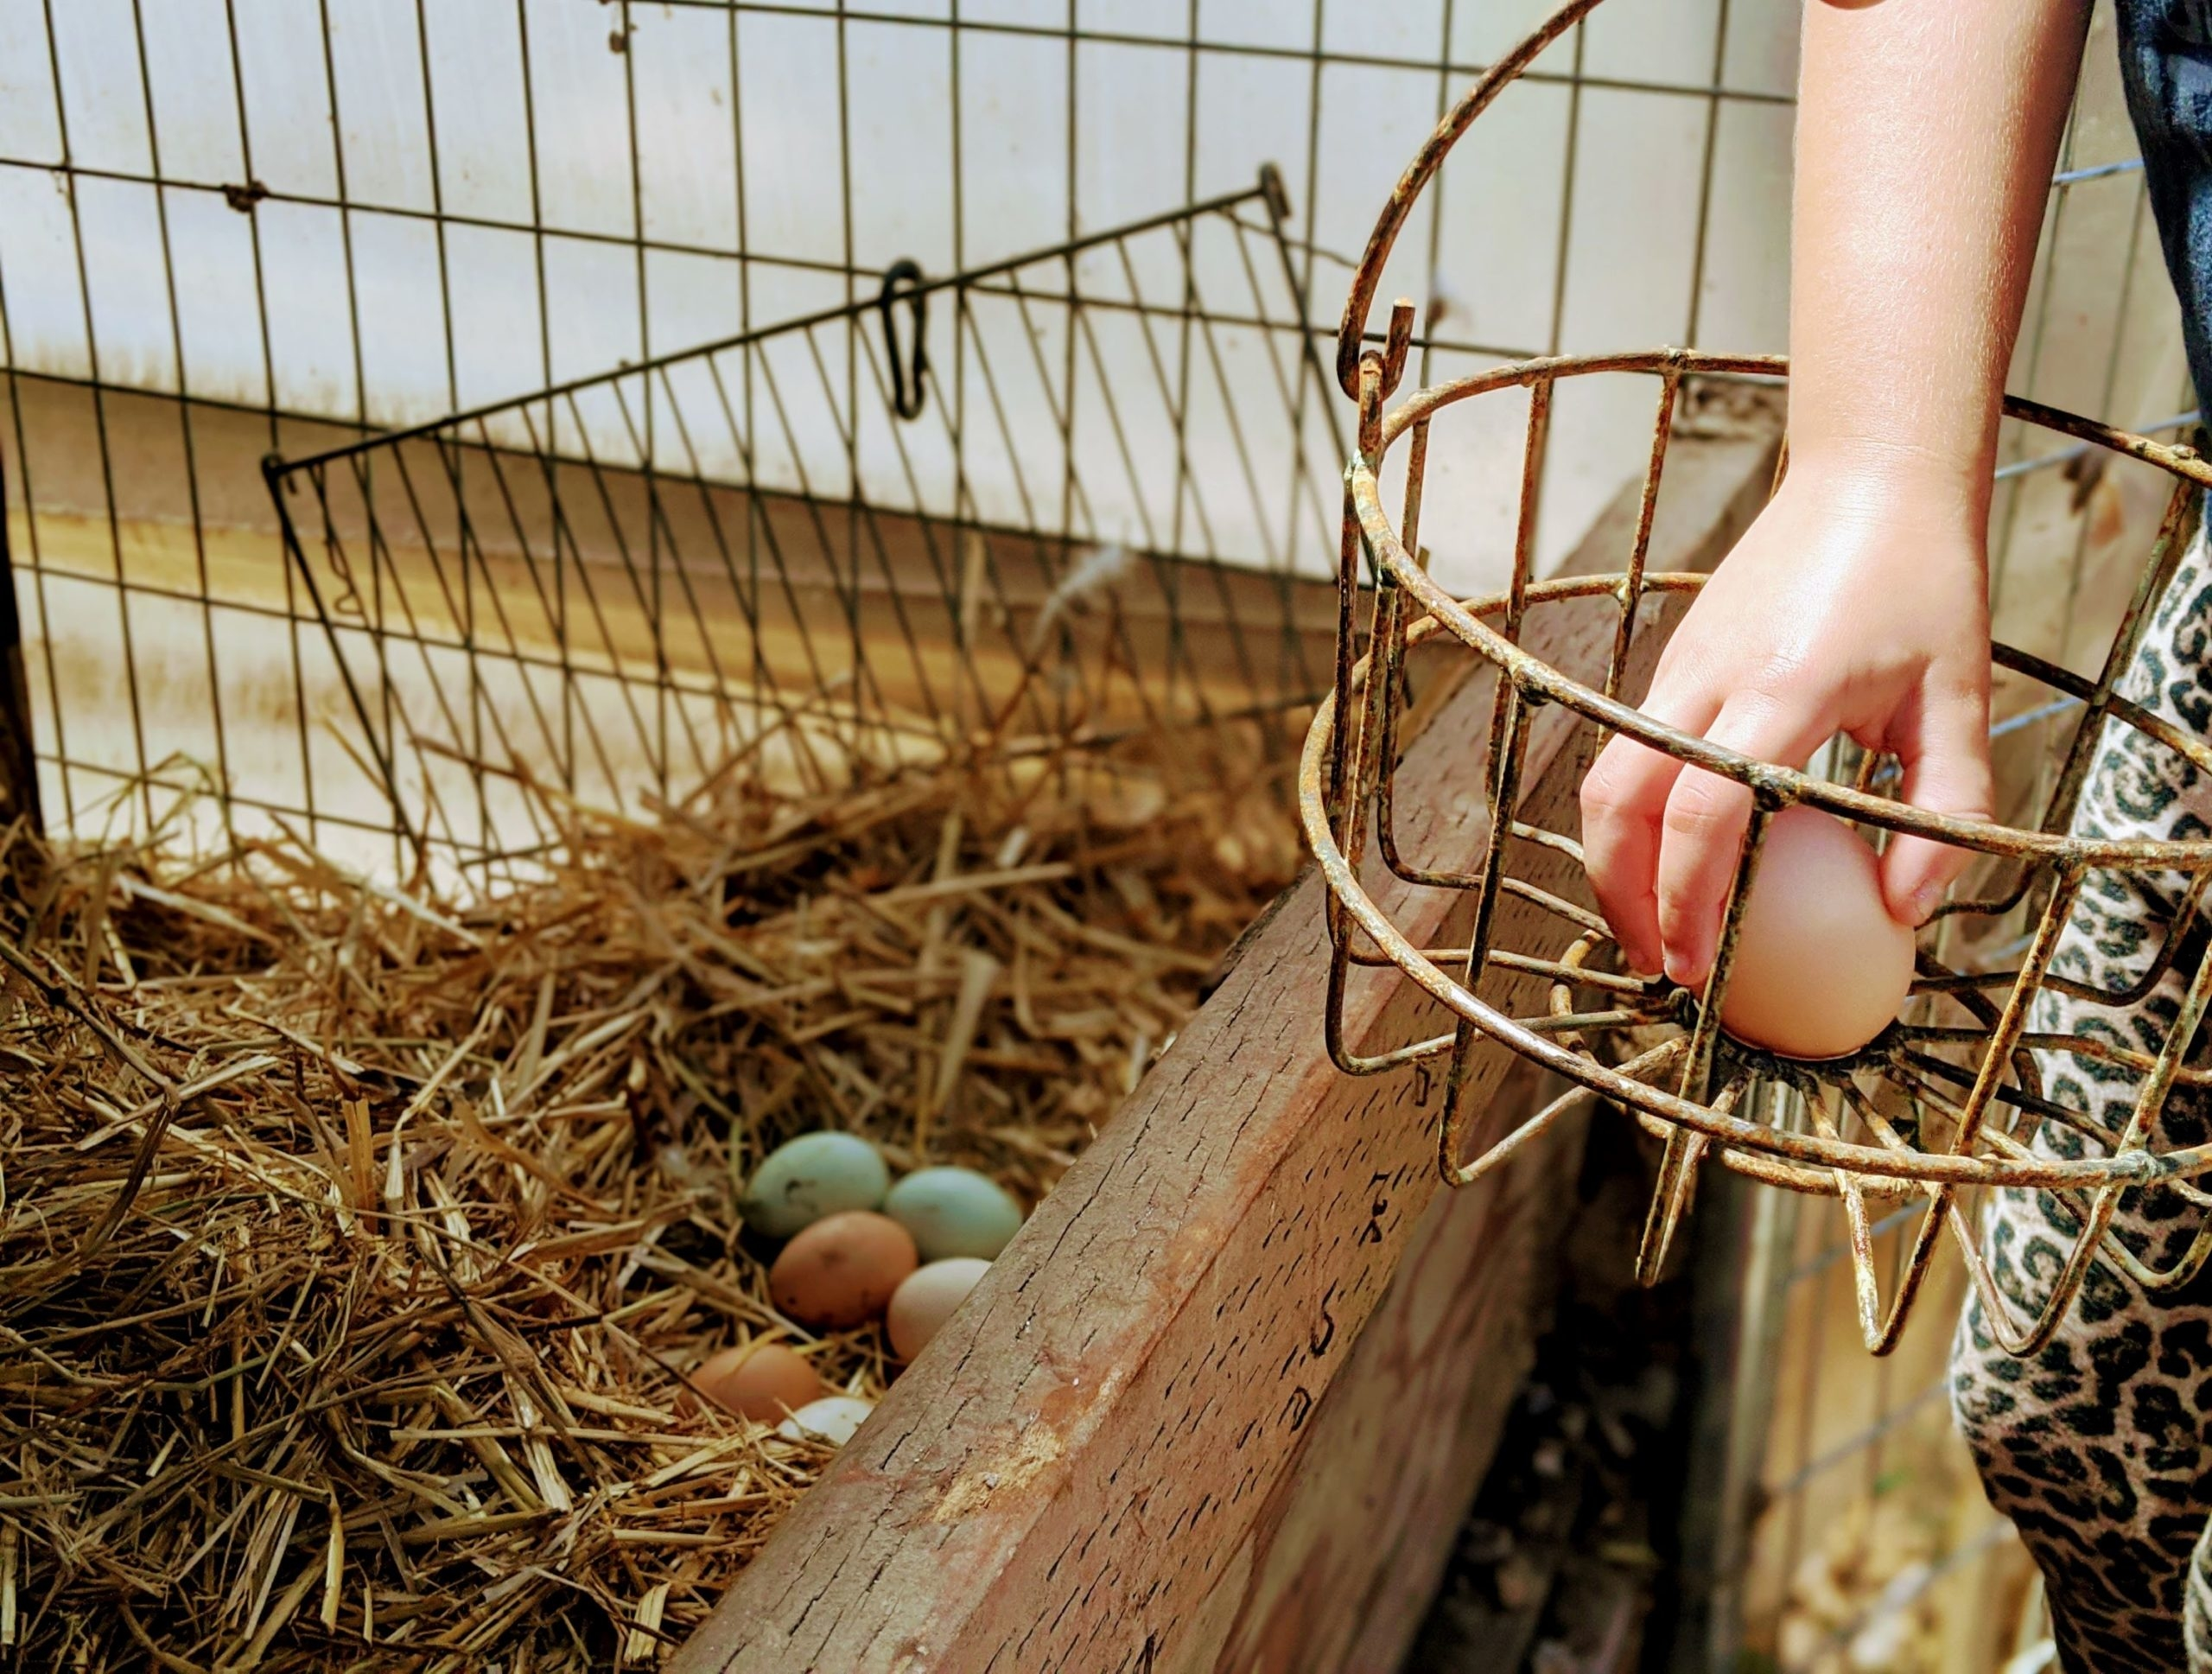 A child's hand places an orange egg into a rusted metal basket, picked from a hay-lined coup.